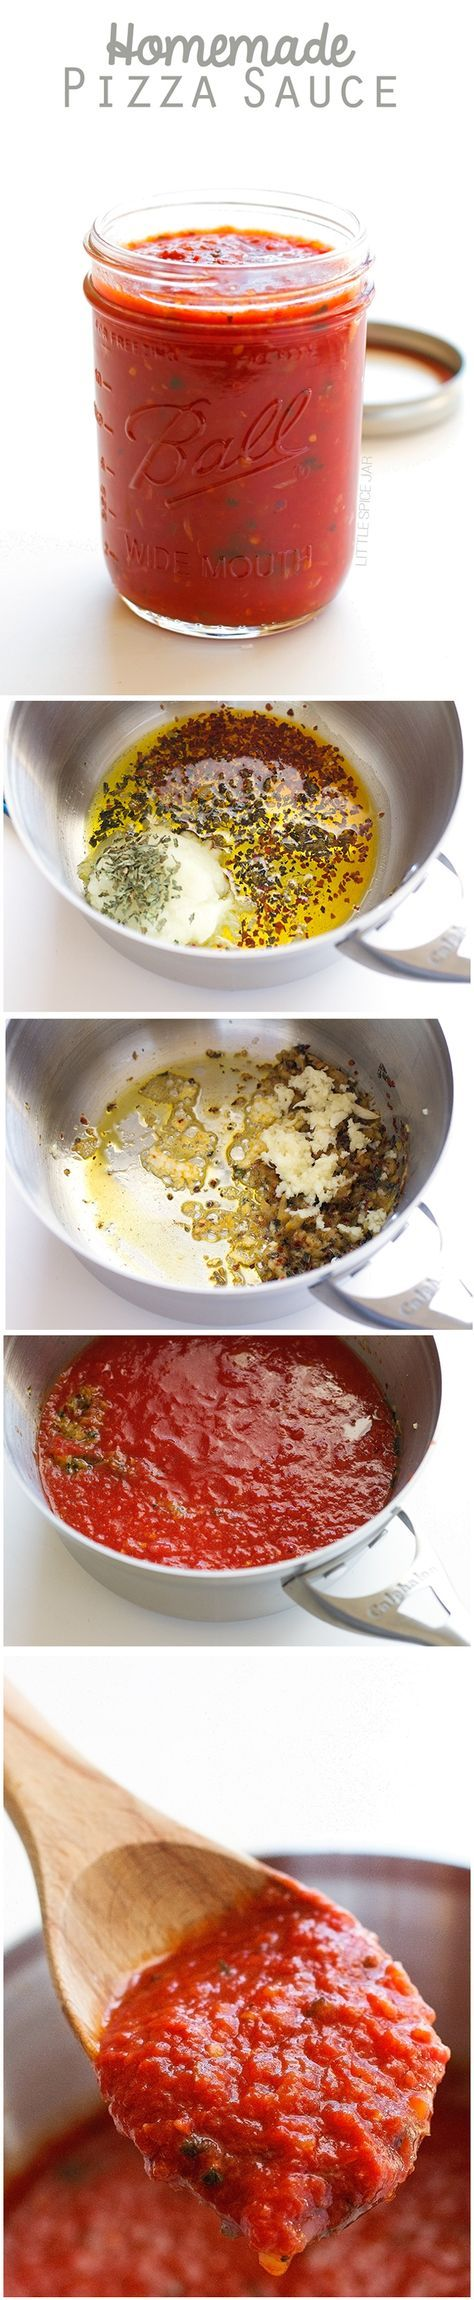 Homemade Pizza Sauce - Made with simple ingredients that are easy to find. This sauce freezes well too! #pizzasauce #tomatosauce #homemade | Littlespicejar.com